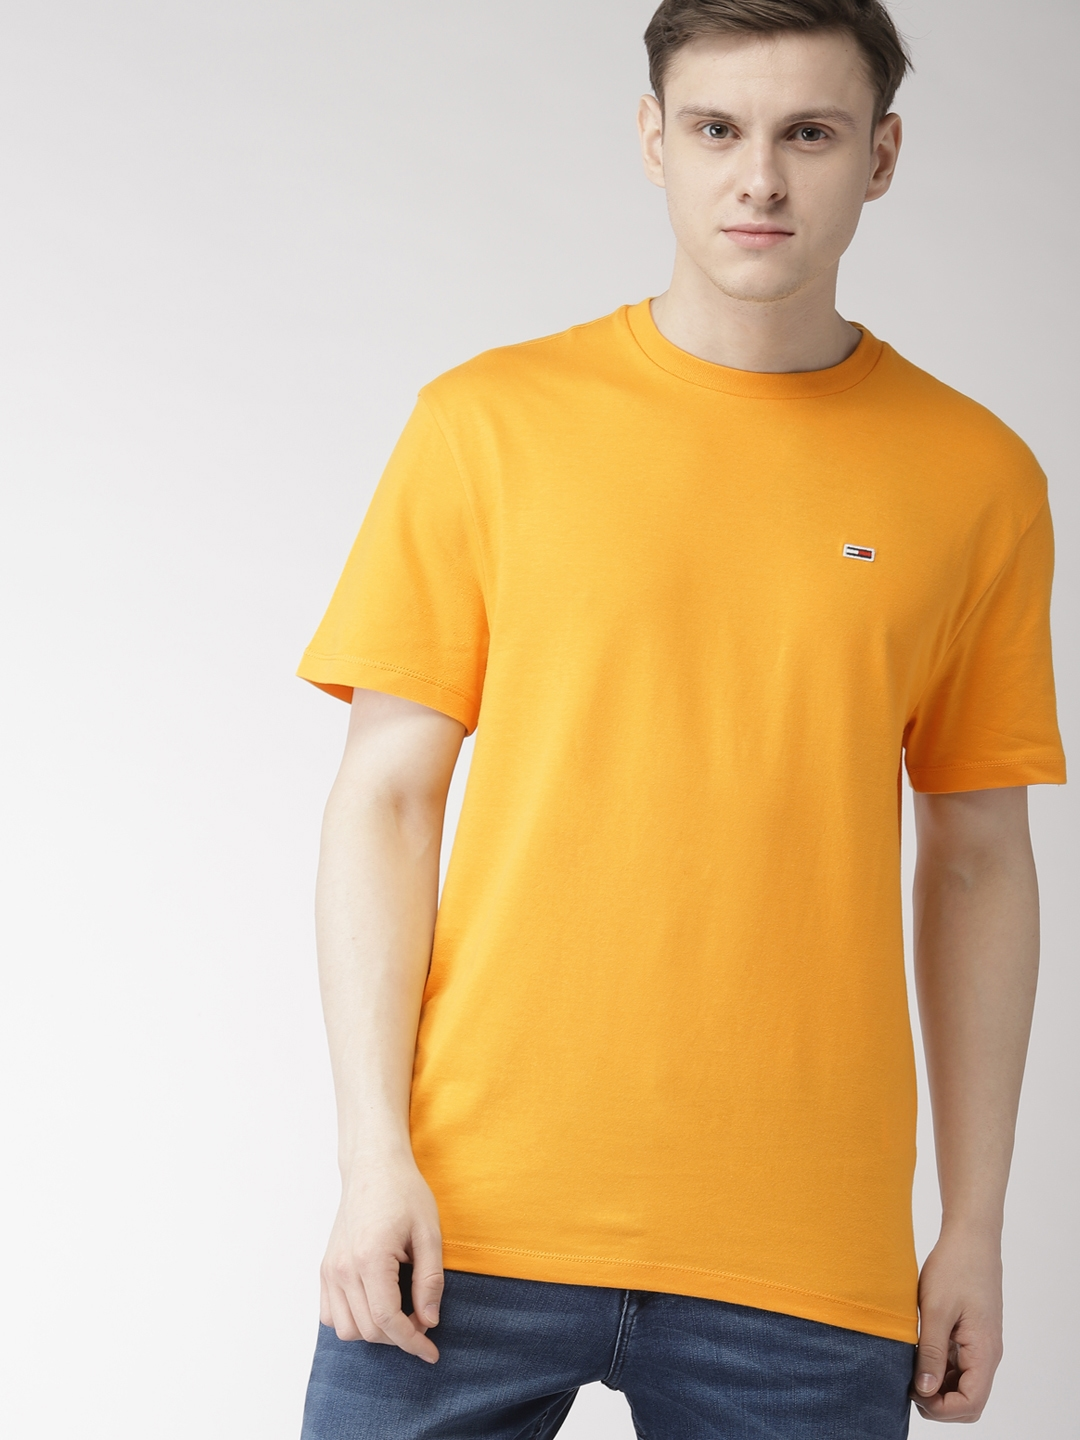 2cd04083049c9 Buy Tommy Hilfiger Men Mustard Yellow Solid Round Neck T Shirt ...